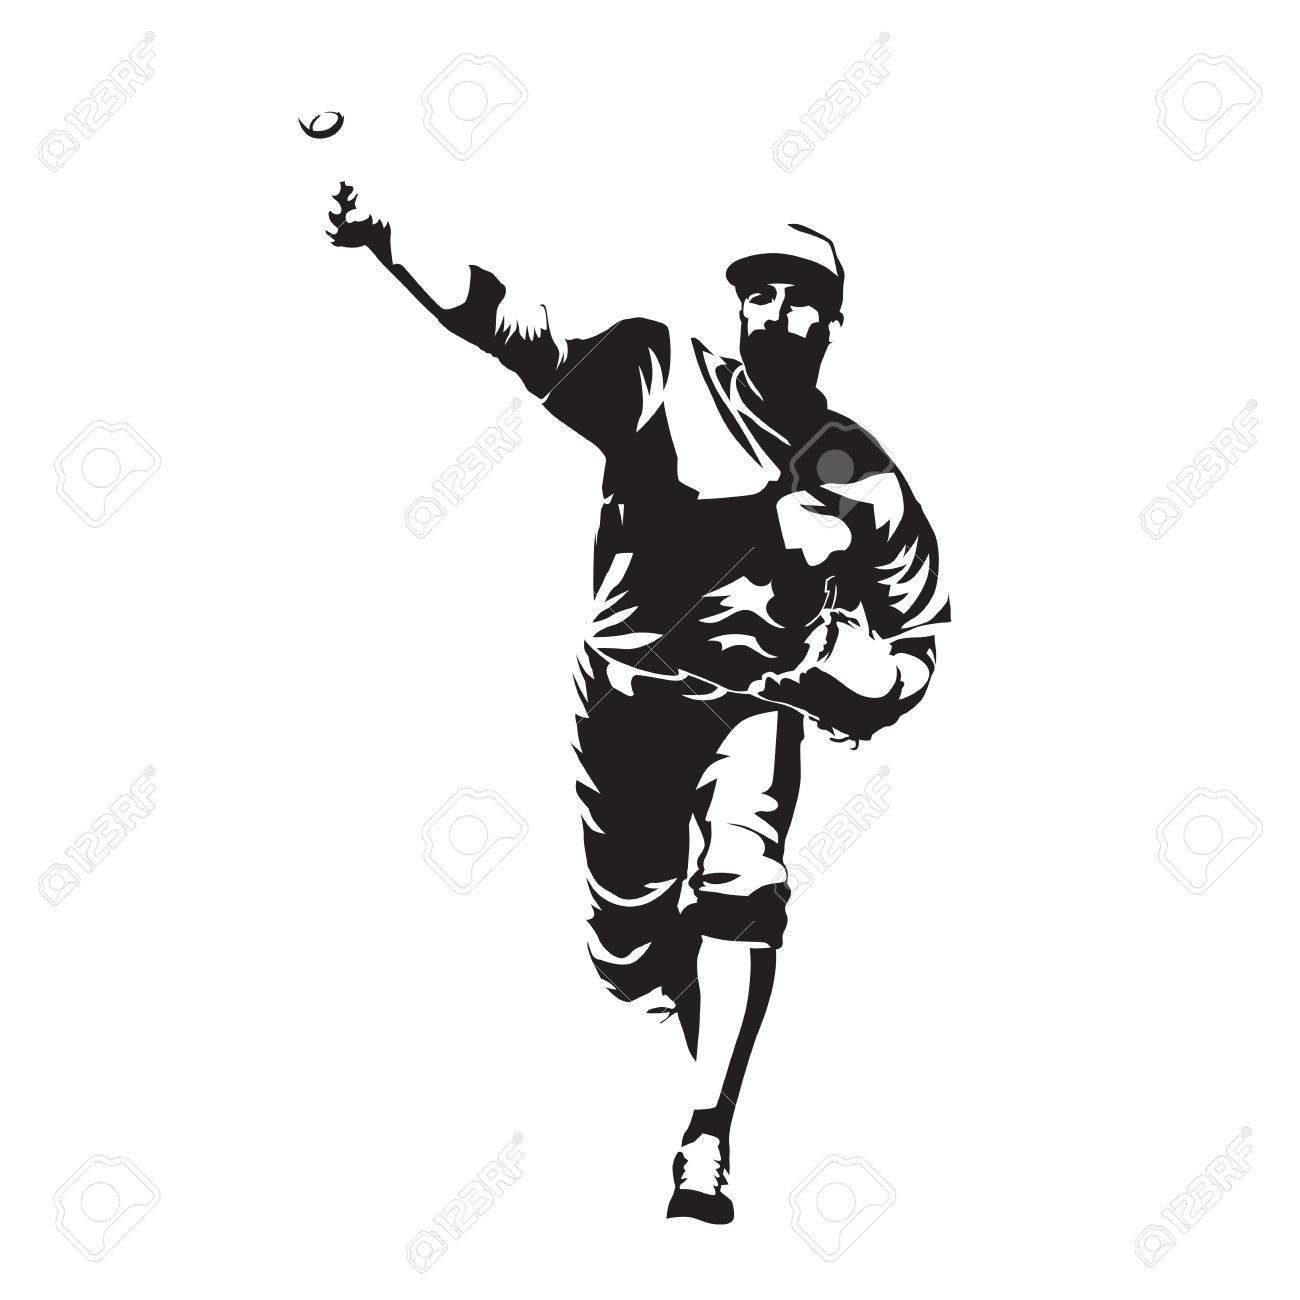 pitcher throwing ball baseball player abstract vector silhouette rh 123rf com Flaming Baseball Vector Baseball Bat Vector Silhouette